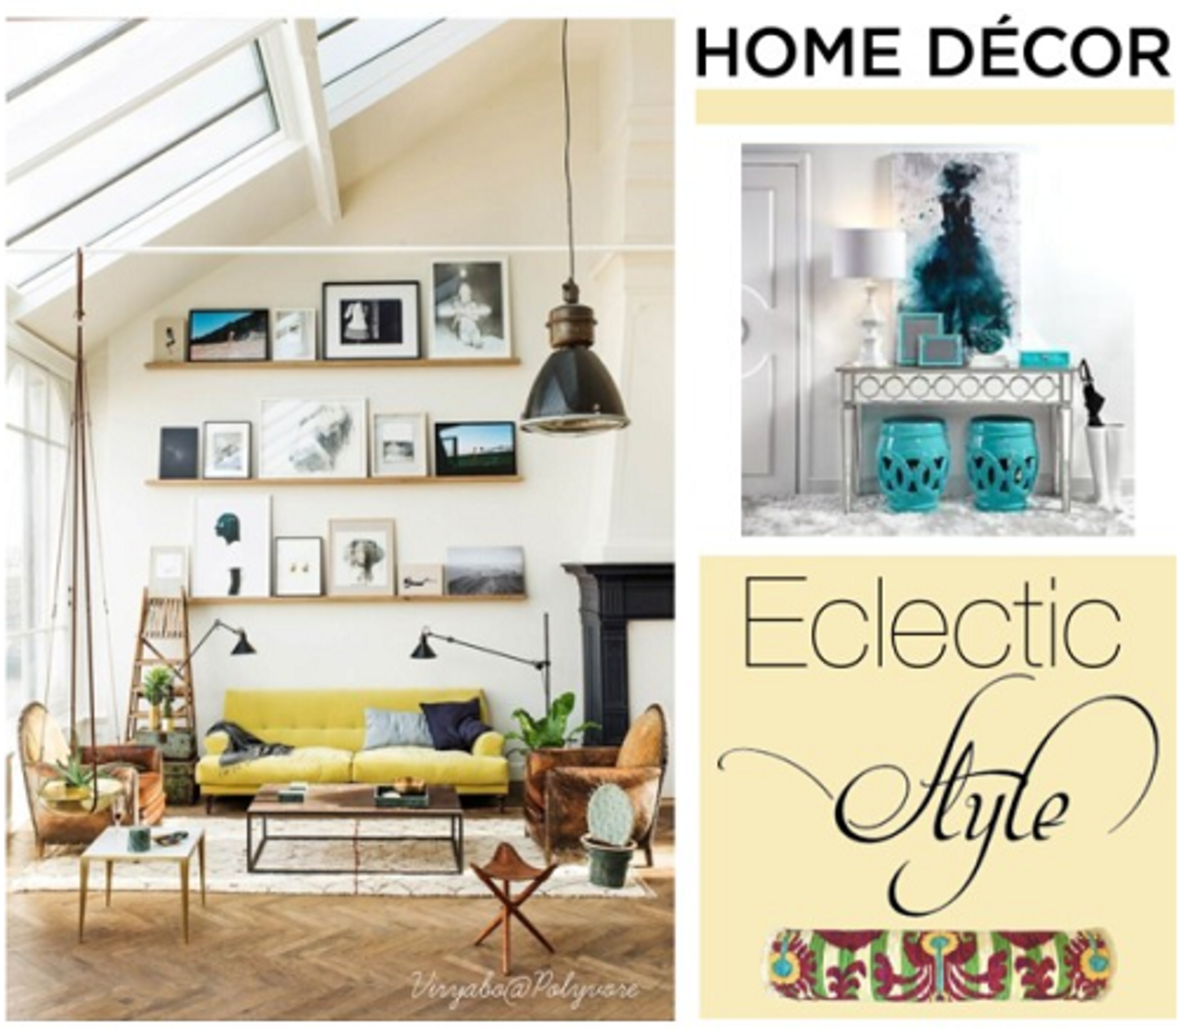 A modern eclectic style